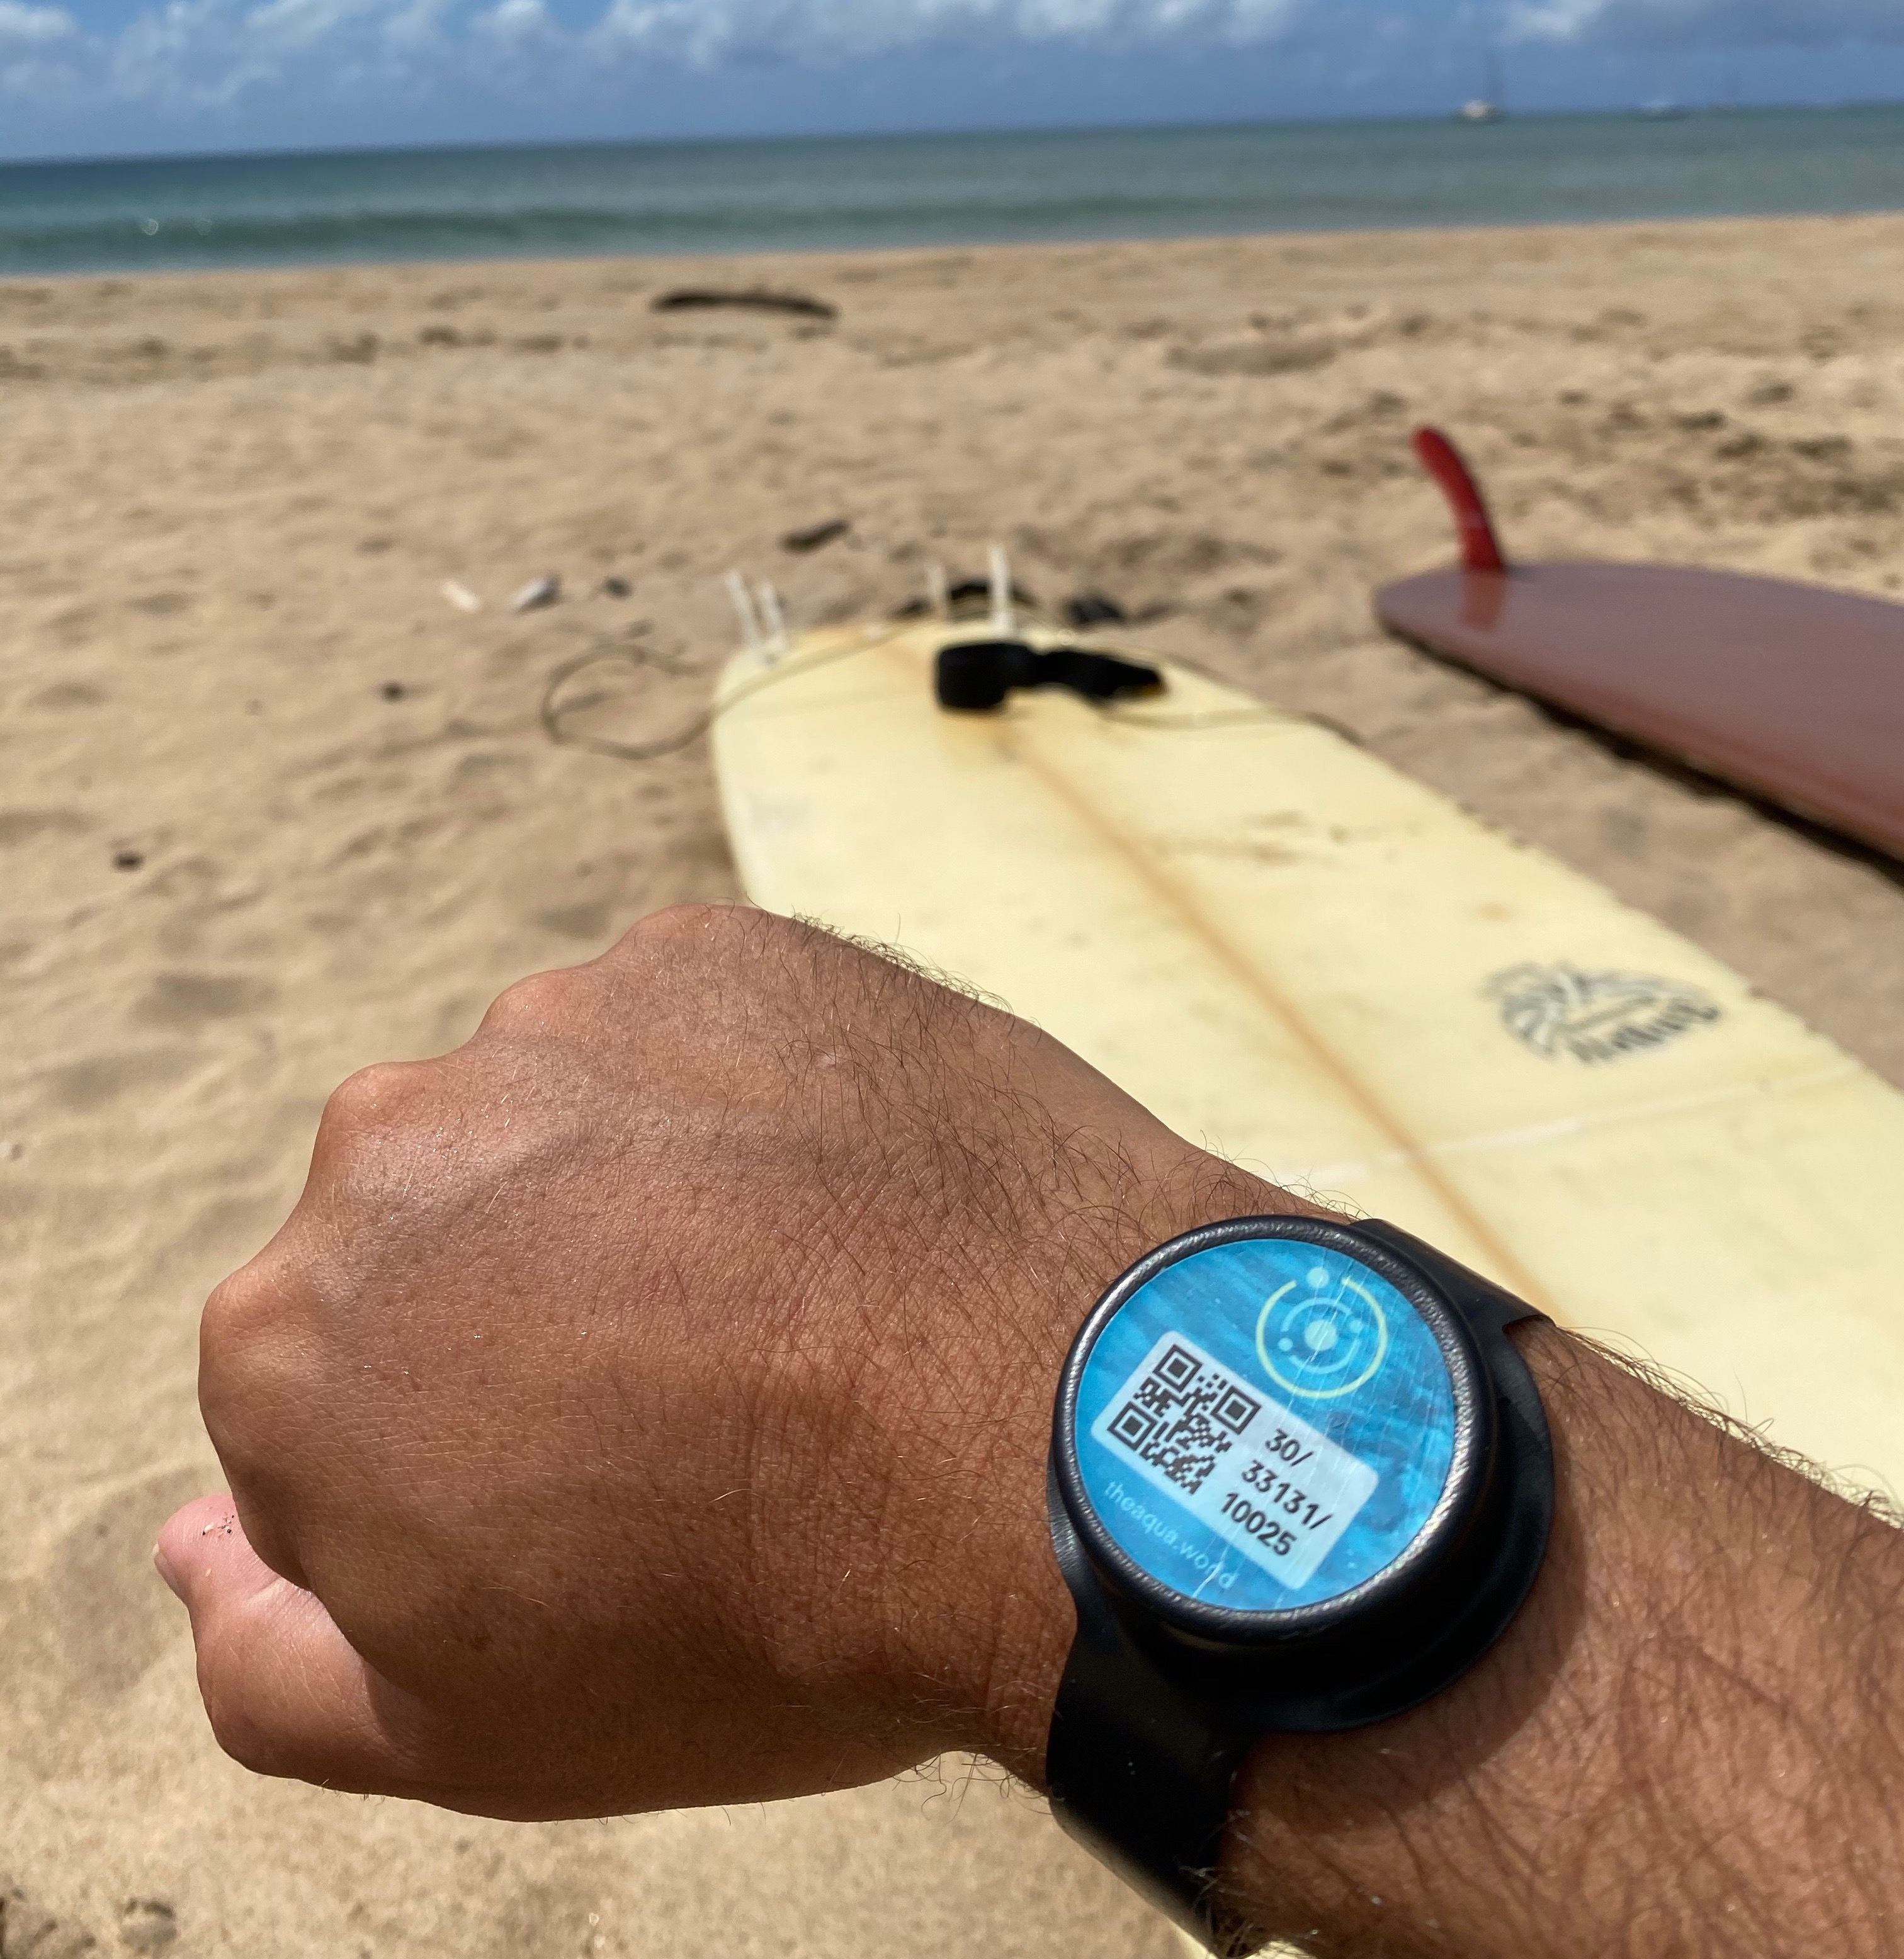 AQUA Introduces Resort Bubbles with Next Generation Travel Wearables and Bracelets